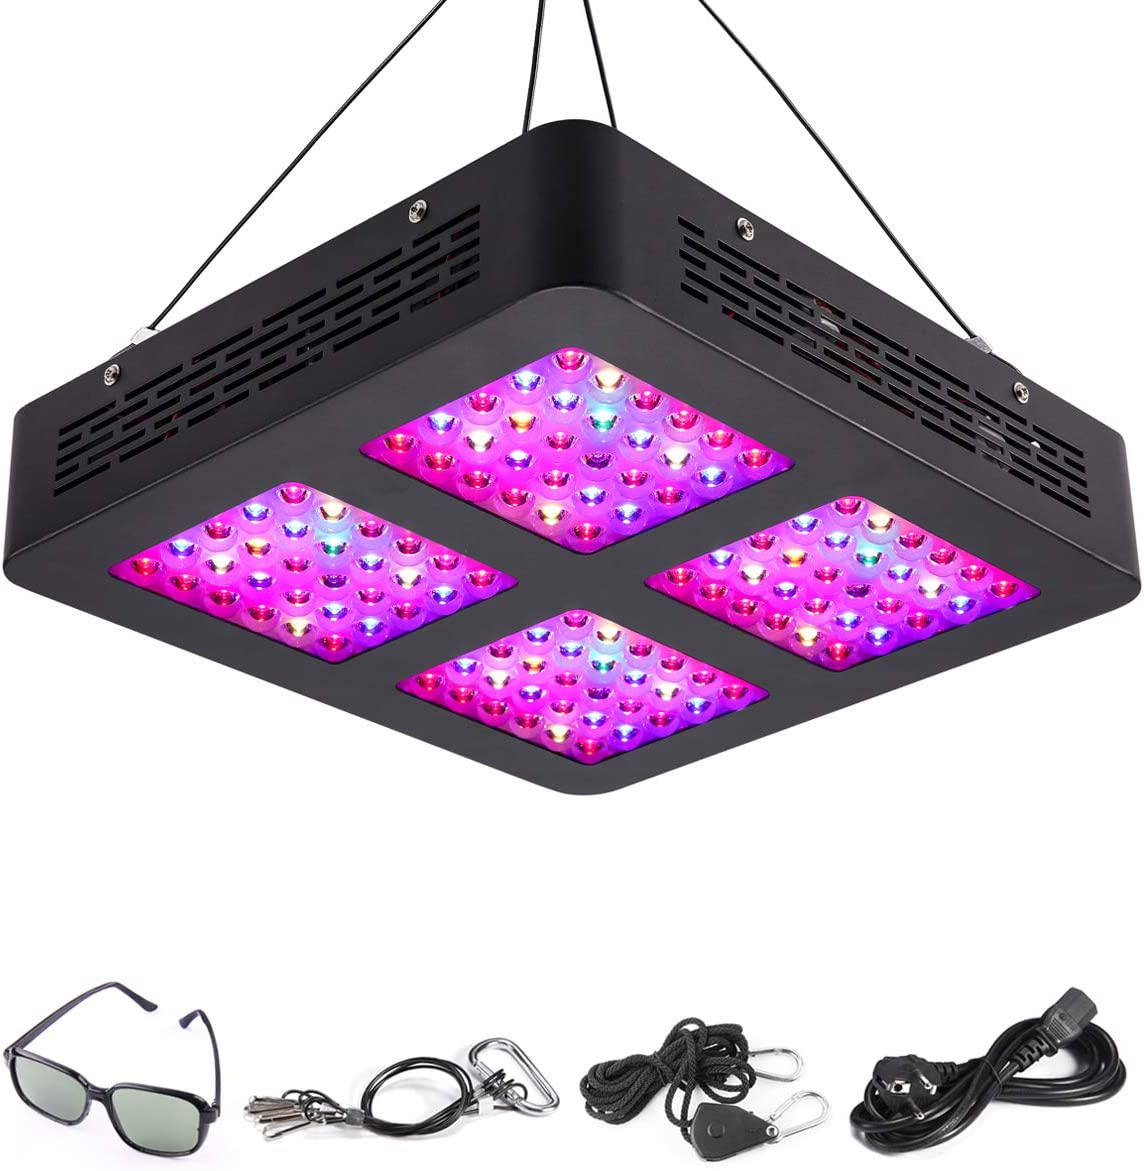 HKUU 600W LED Grow Light for Indoor Plants, Full Spectrum Growing Lamp for Hydroponic Indoor Plants Veg and Flower with Daisy Chain Triple-Chips and Goggle